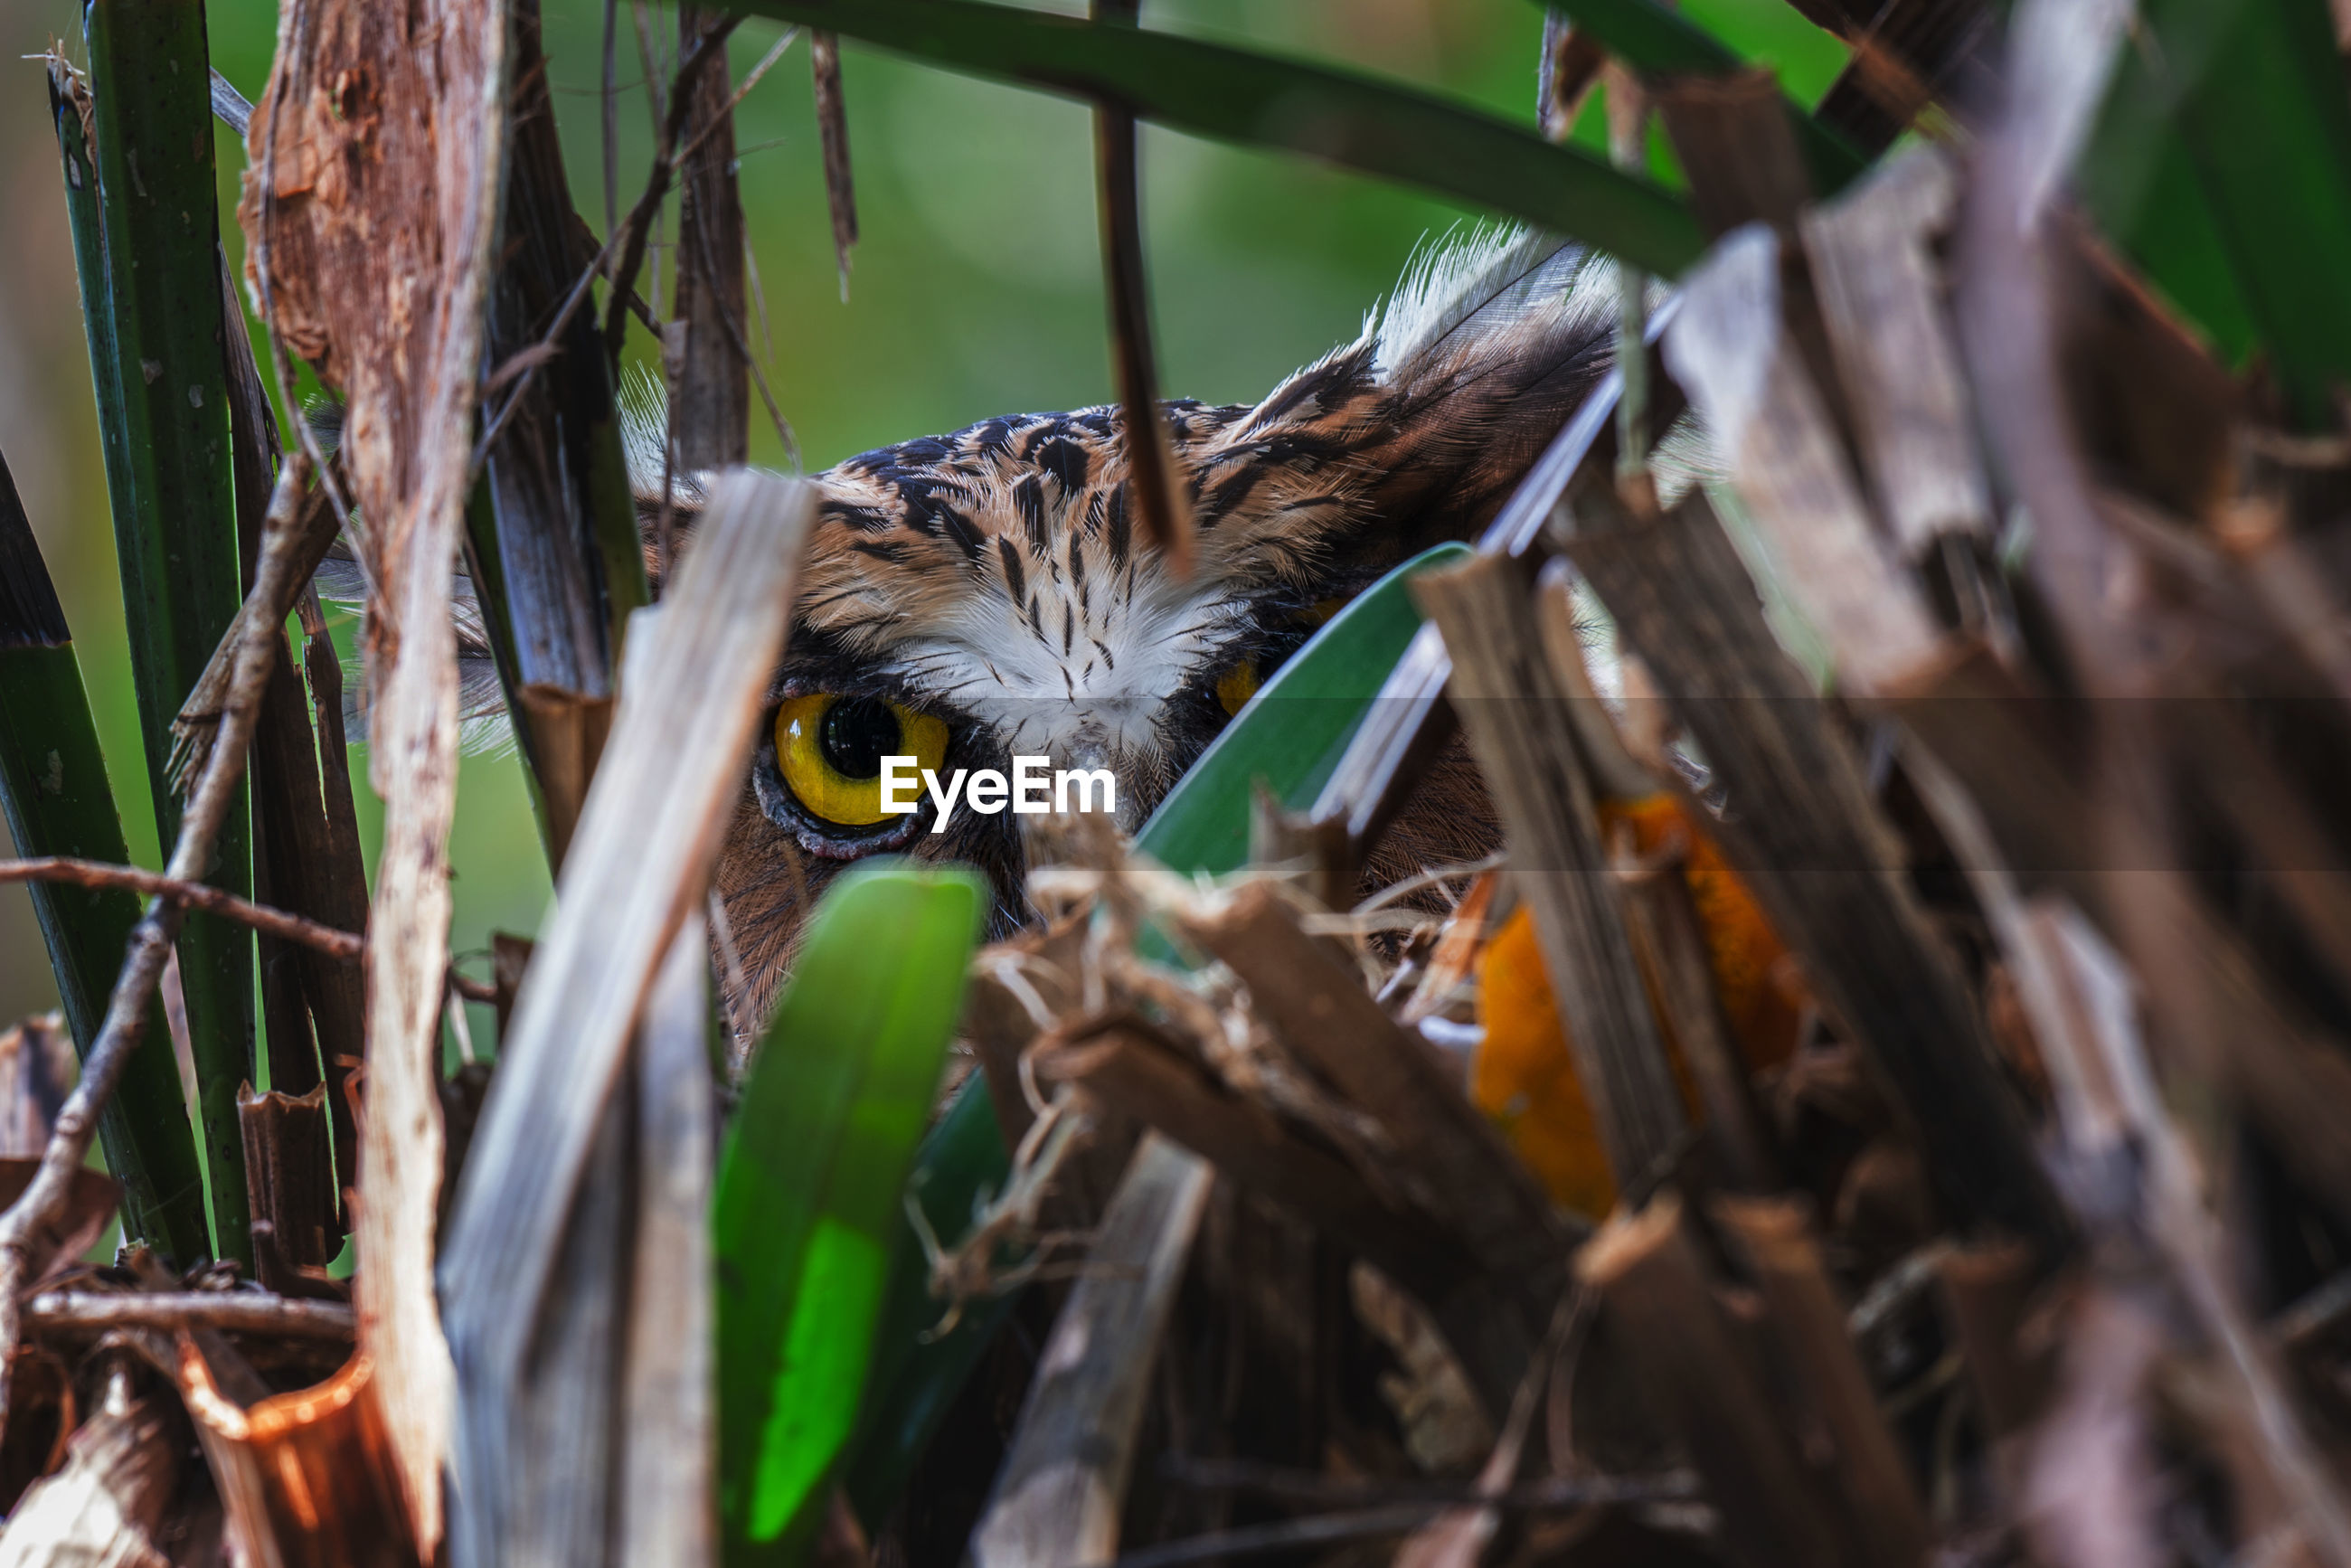 Close-up of owl peeking through plants